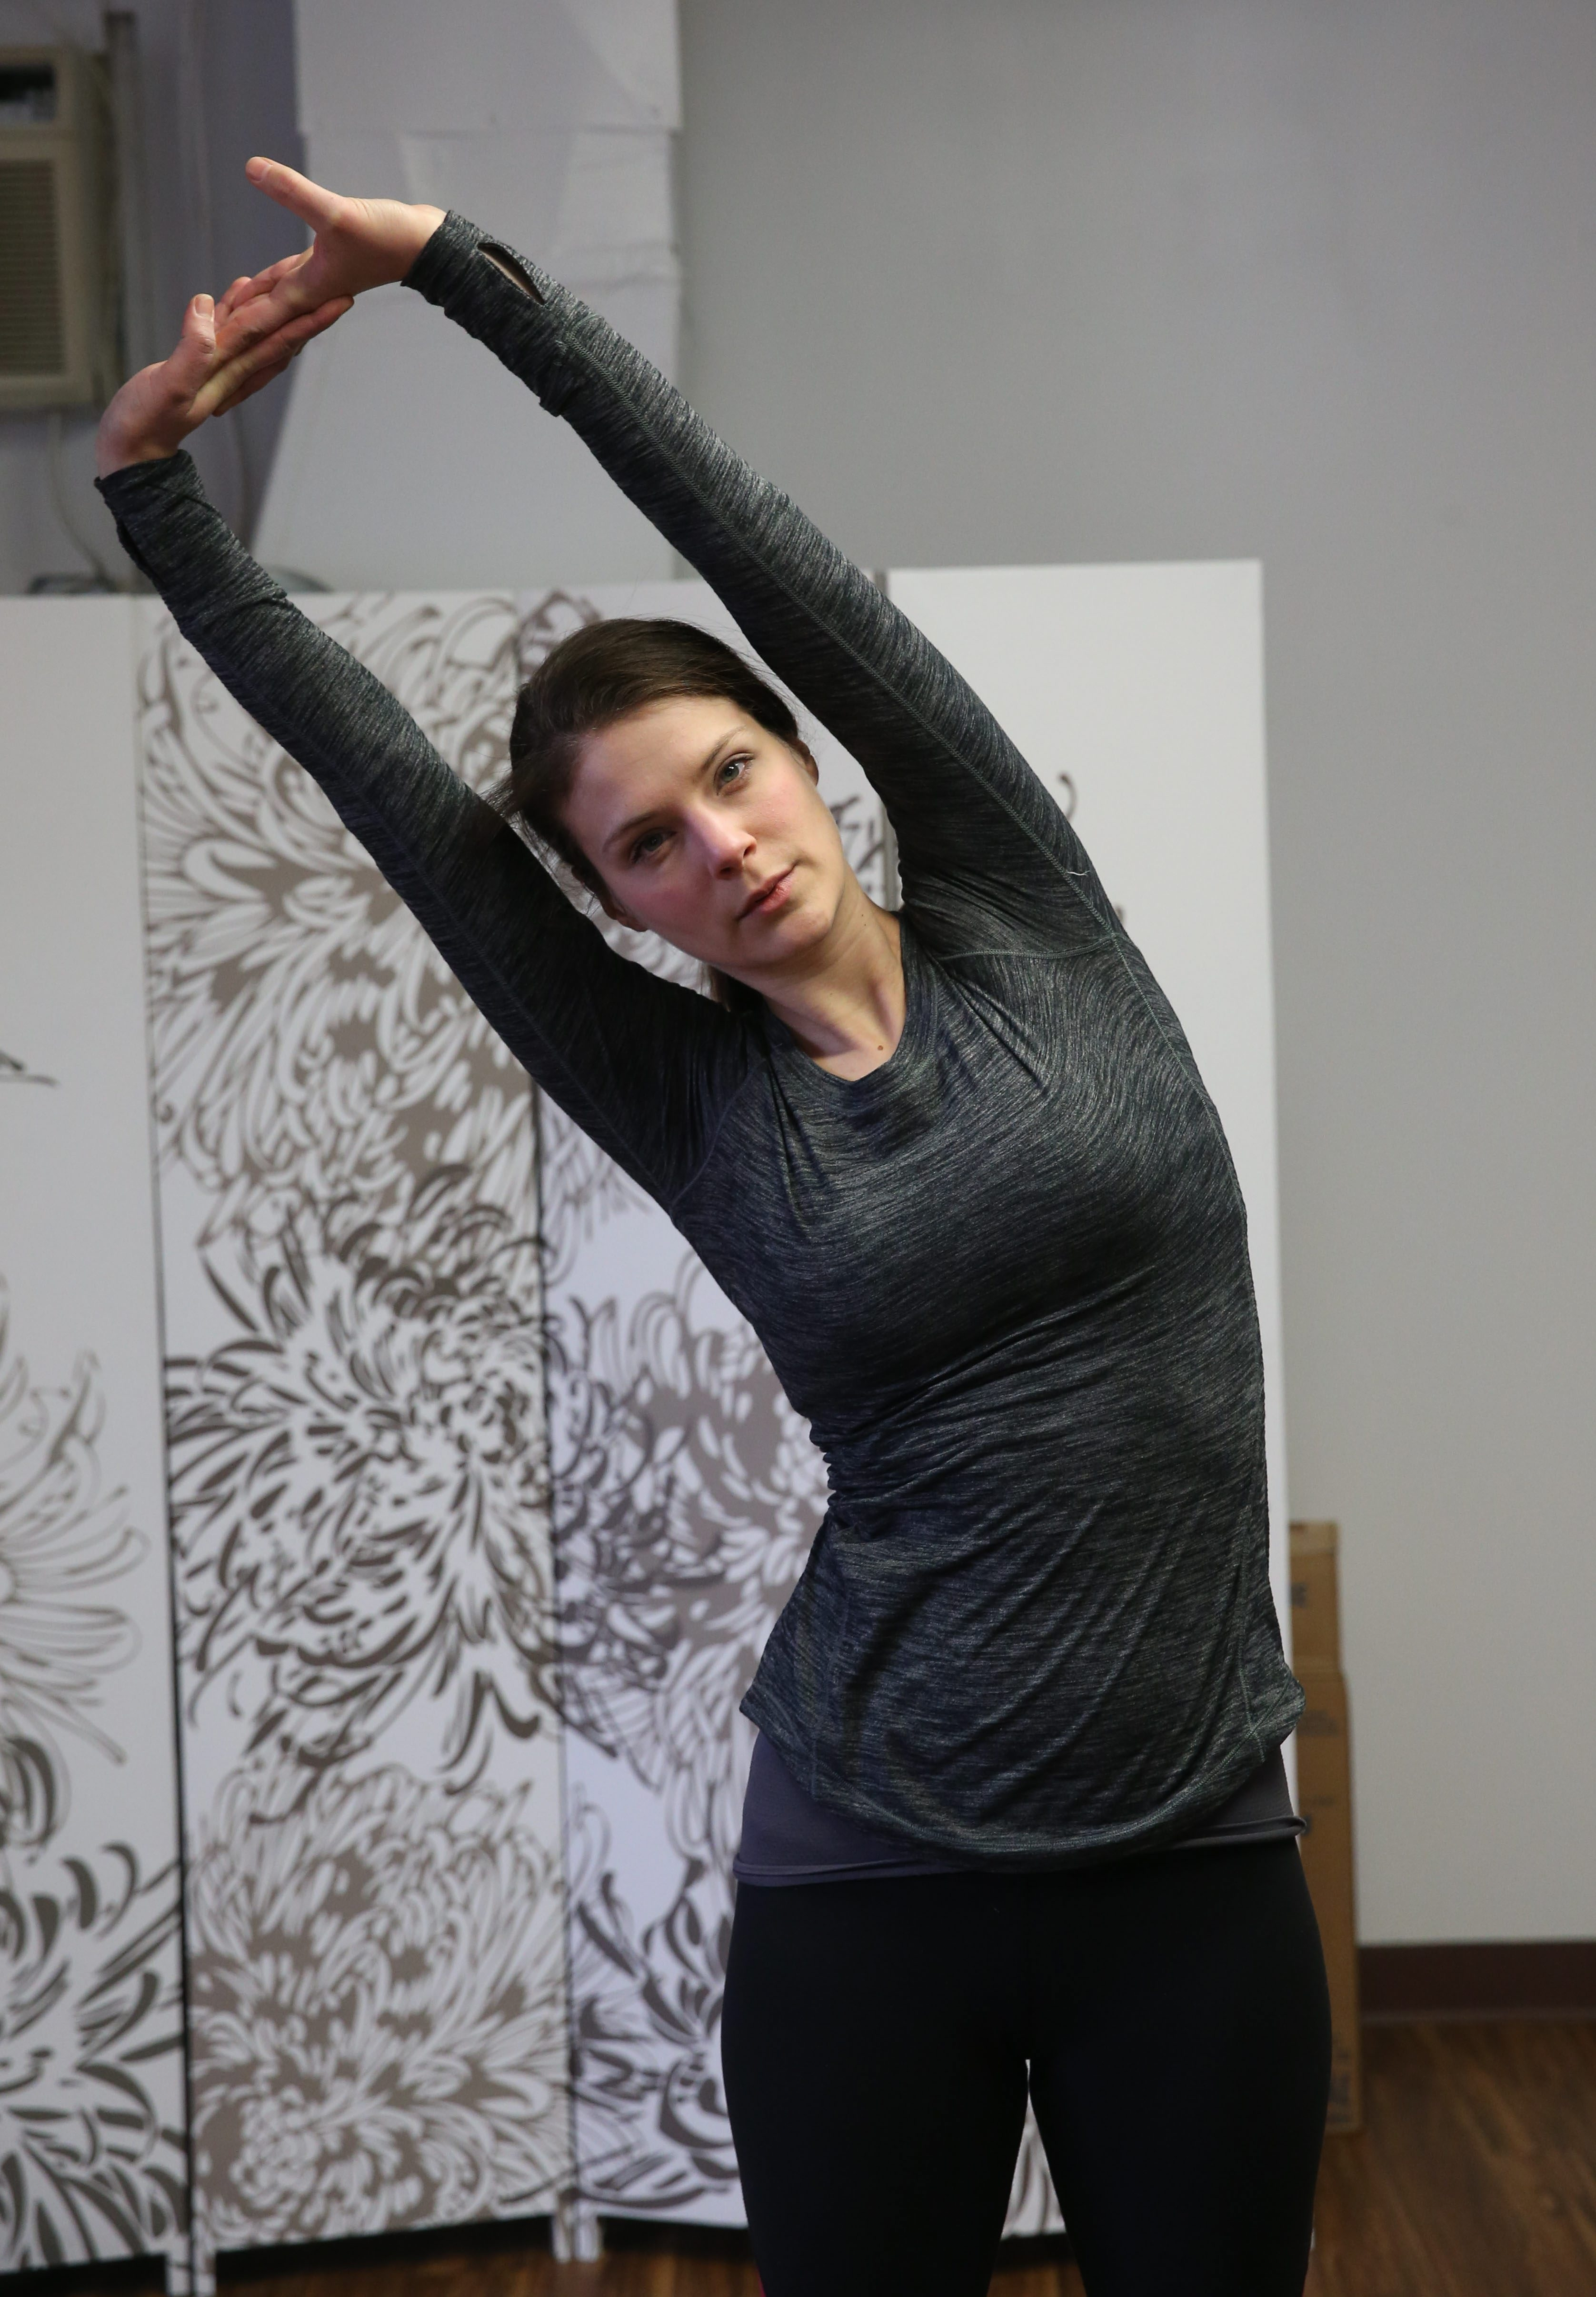 Hayley Sunshine, owner of Long + Lean Pilates at 515 Elmwood Ave. in Buffalo demonstrates some stretches that will help runners get ready for their season, Monday, Feb. 22, 2016.  This is the Overhead Side-Bend. (Sharon Cantillon/Buffalo News)